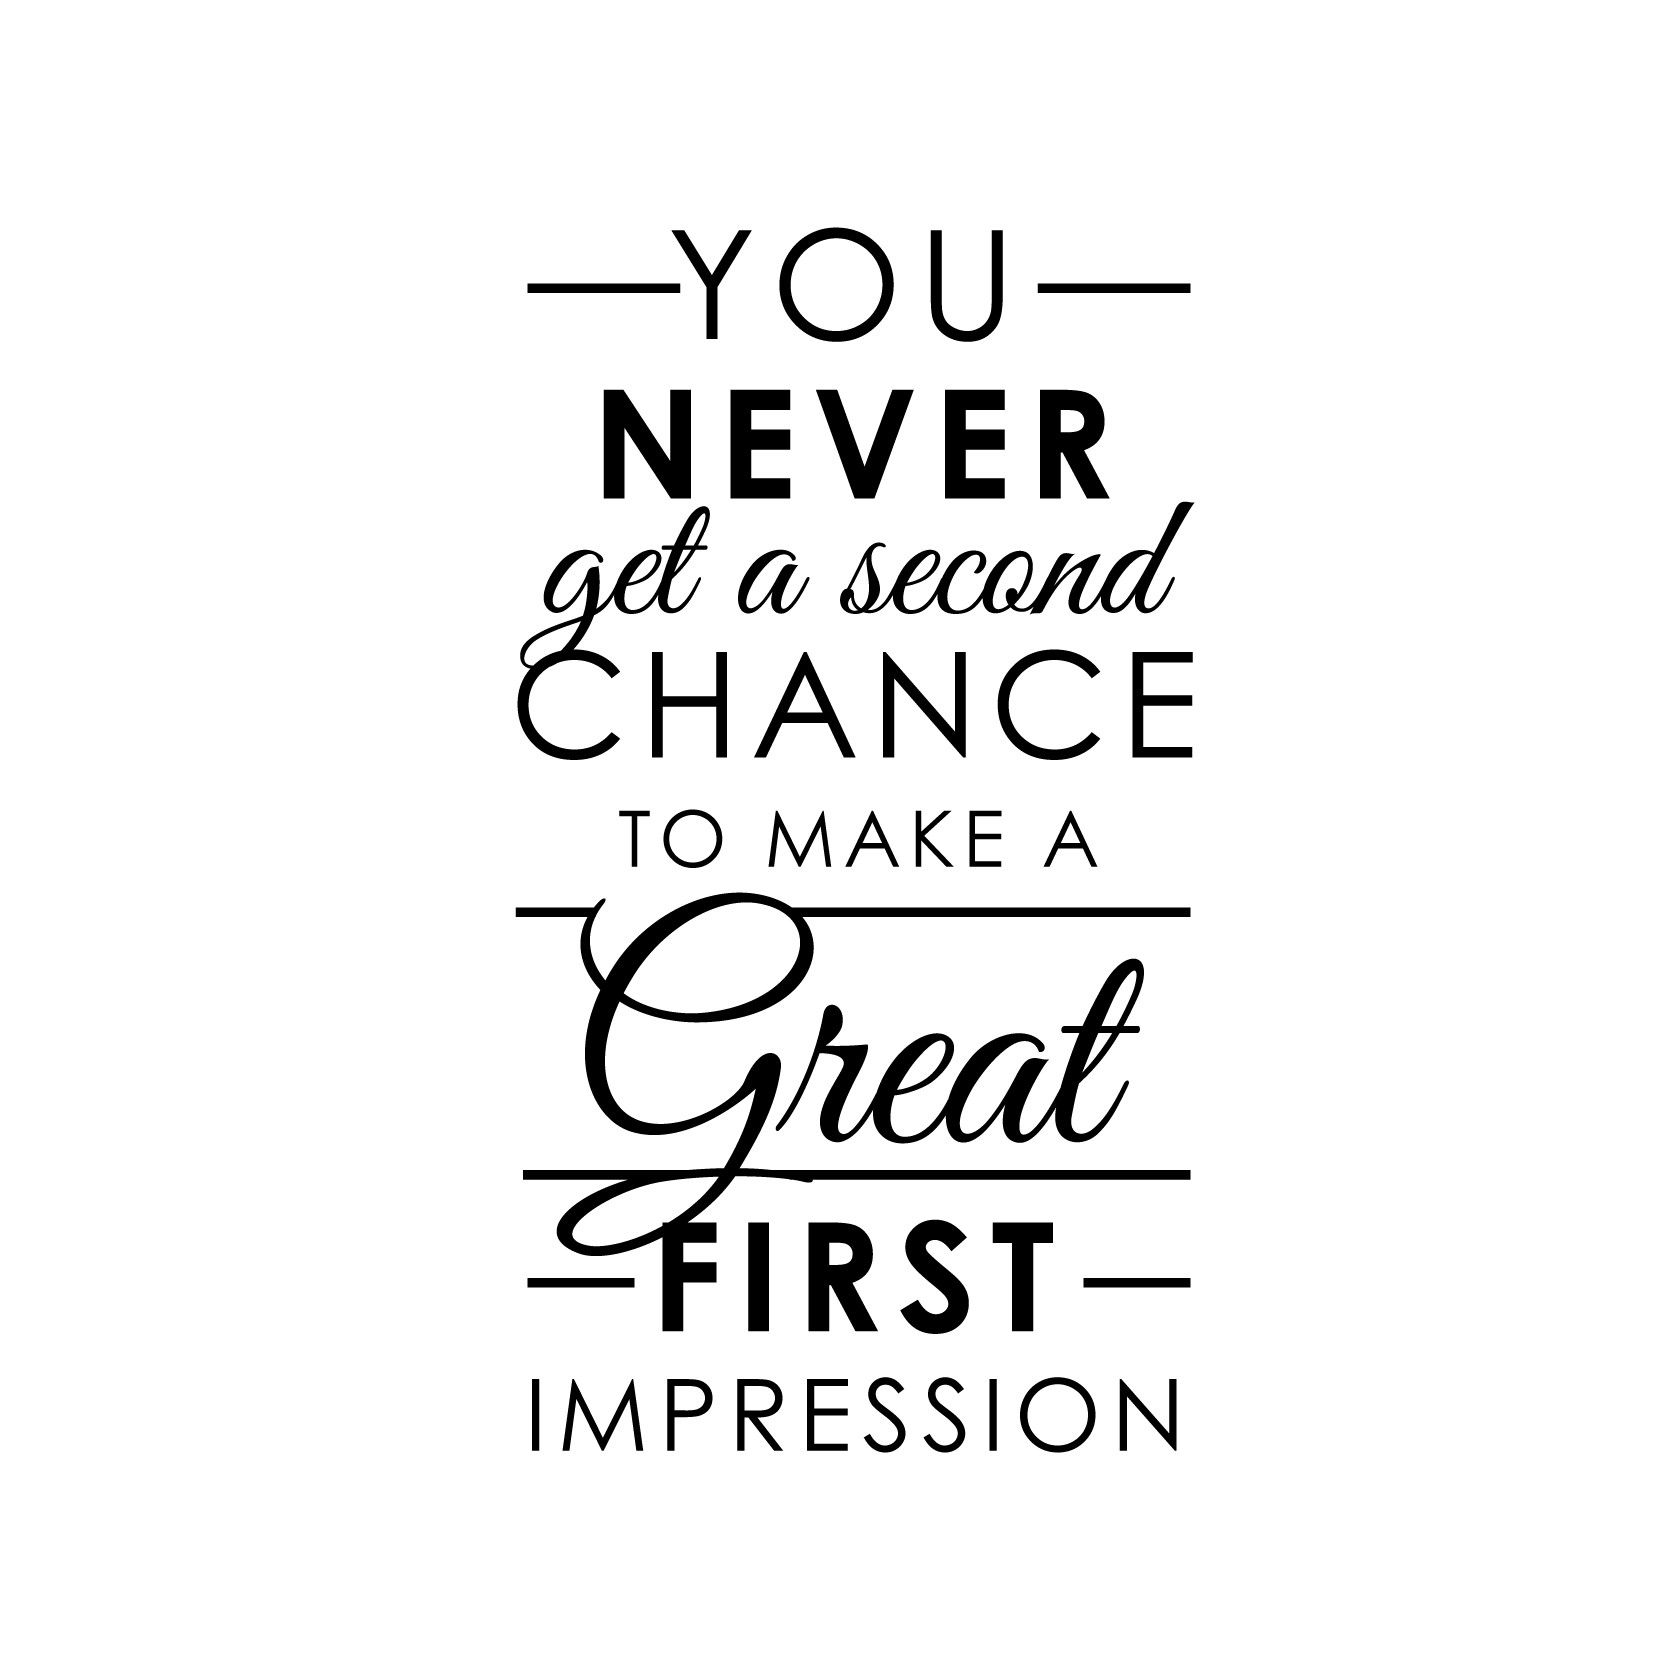 best first impression quotes funny thoughts 17 best first impression quotes funny thoughts funny sarcastic and funny work quotes